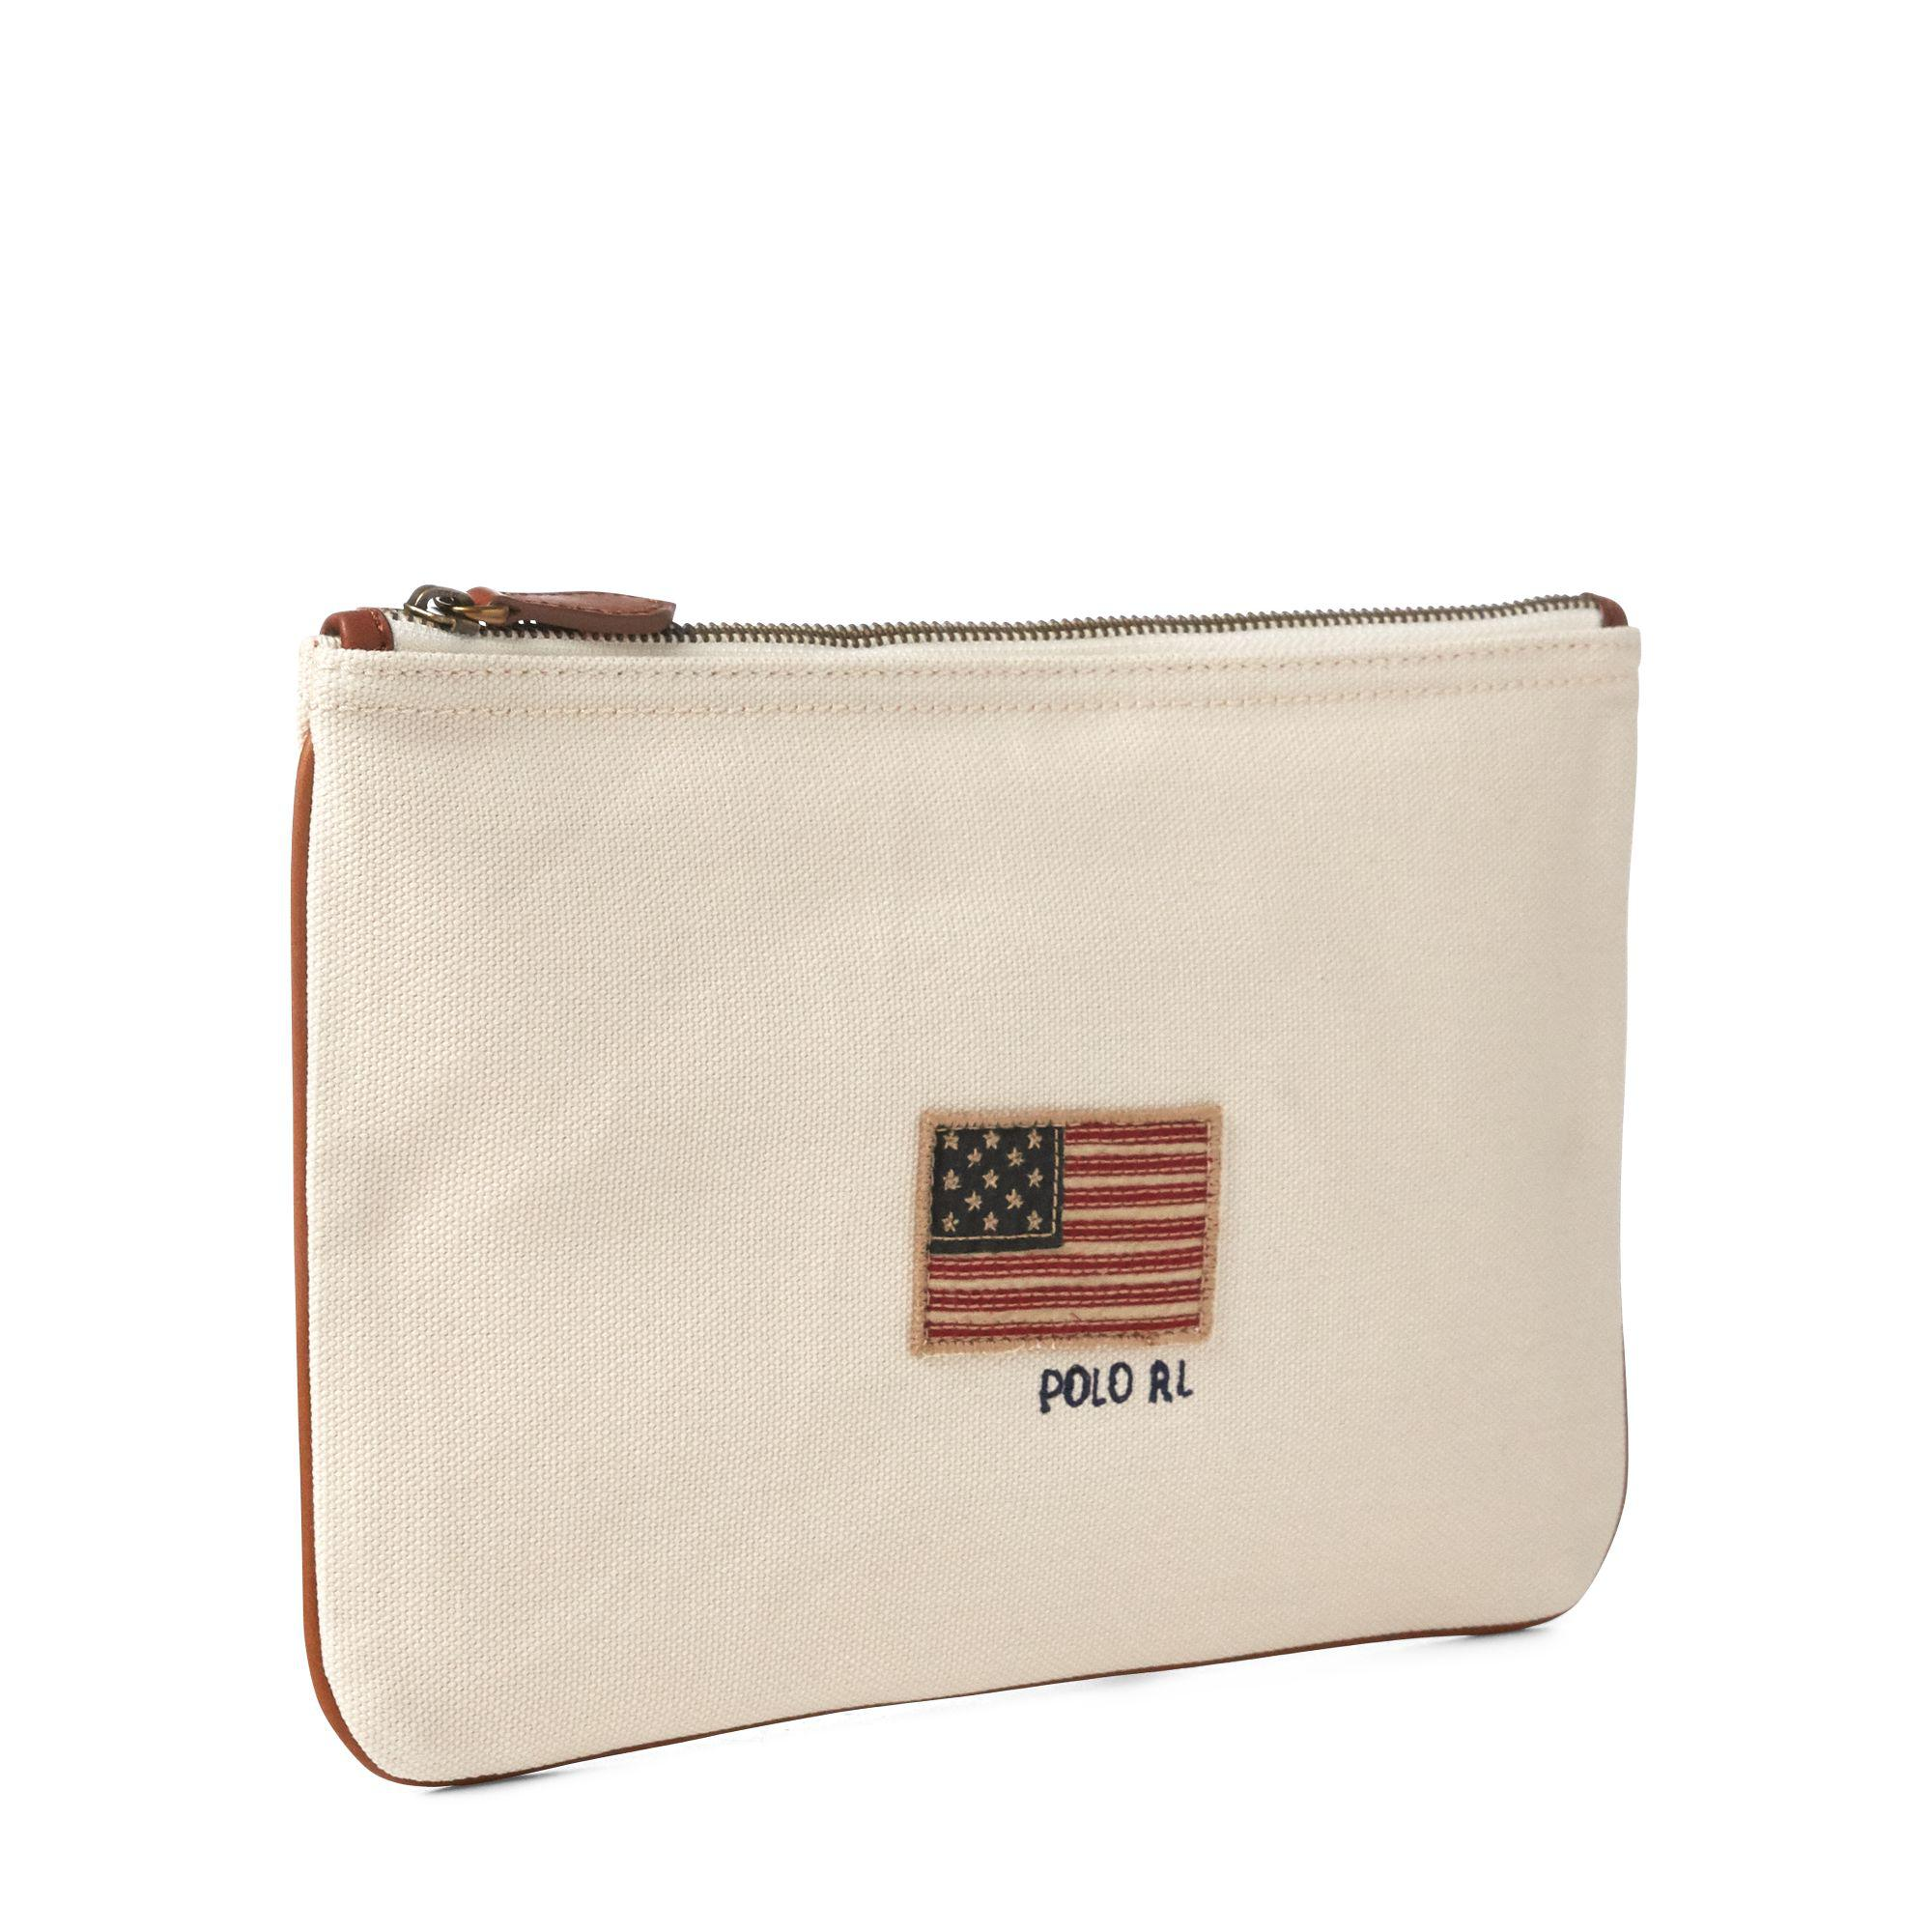 24fc31646c11 ... cheapest polo ralph lauren natural flag canvas small pouch lyst. view  fullscreen b66c4 afc4d